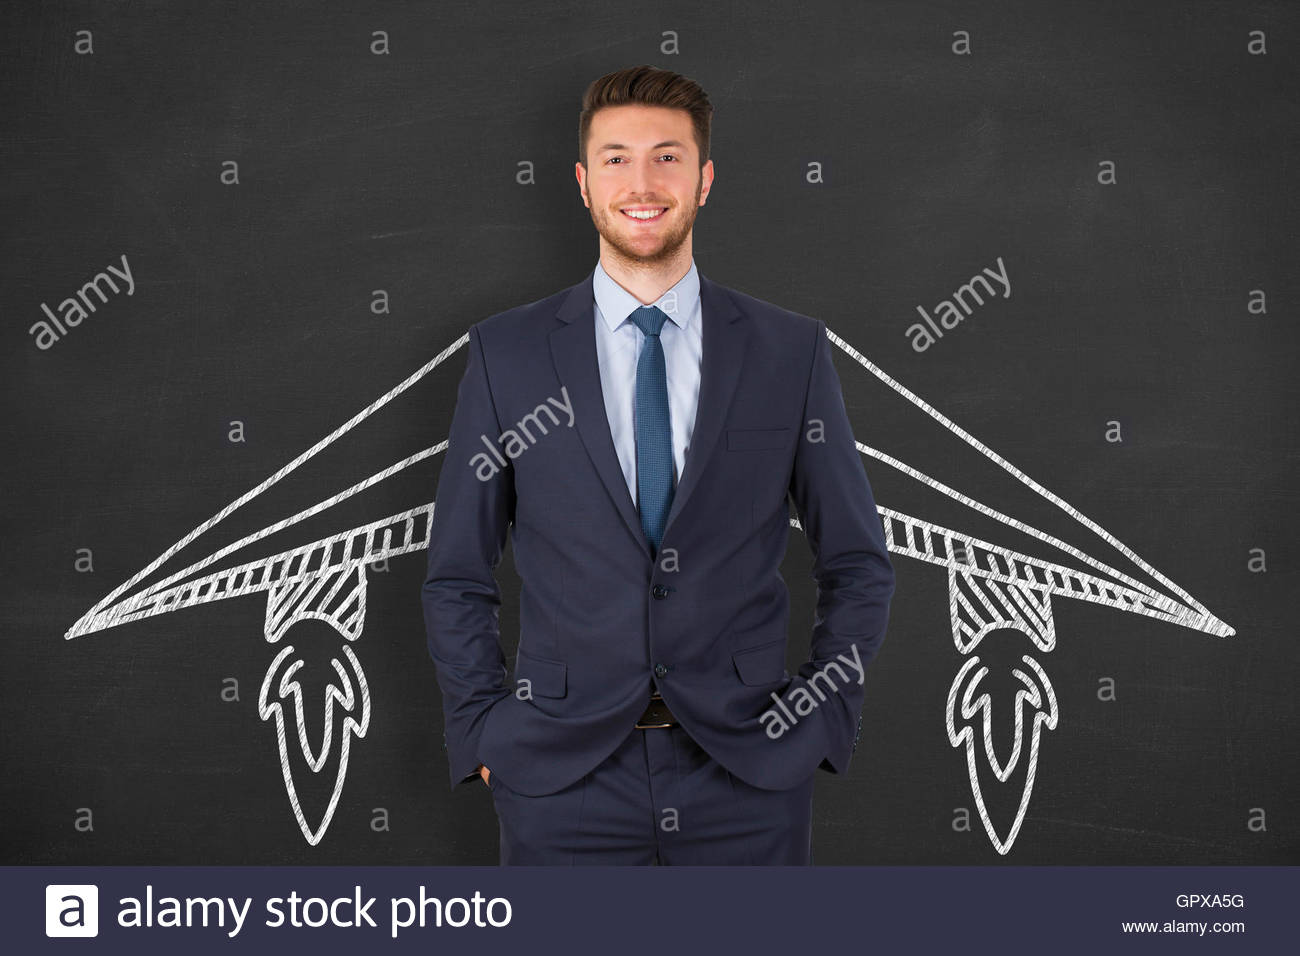 Business Person Start Concept - Stock Image